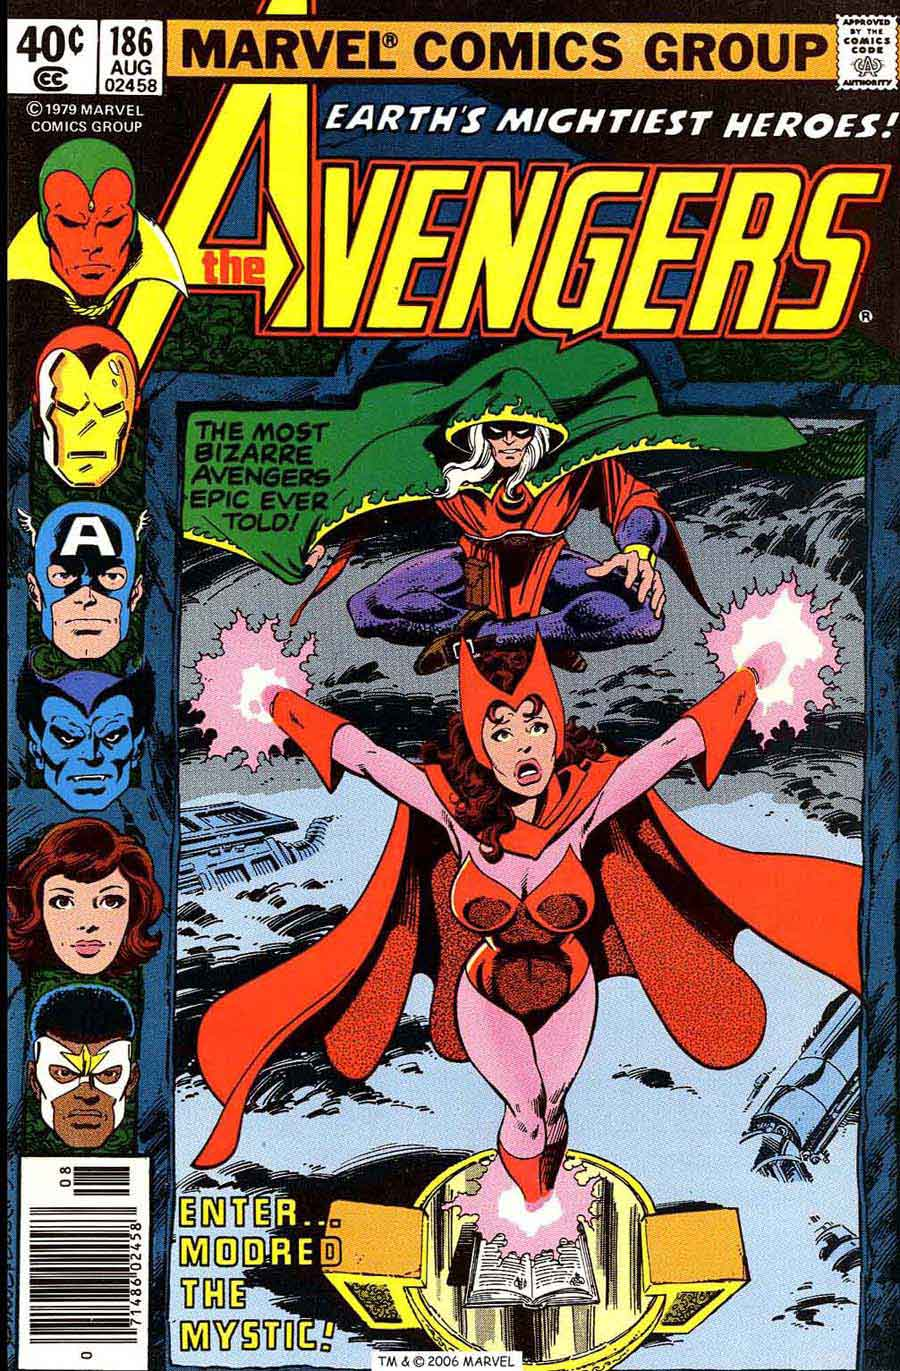 Avengers #186 marvel 1970s bronze age comic book cover art by John Byrne